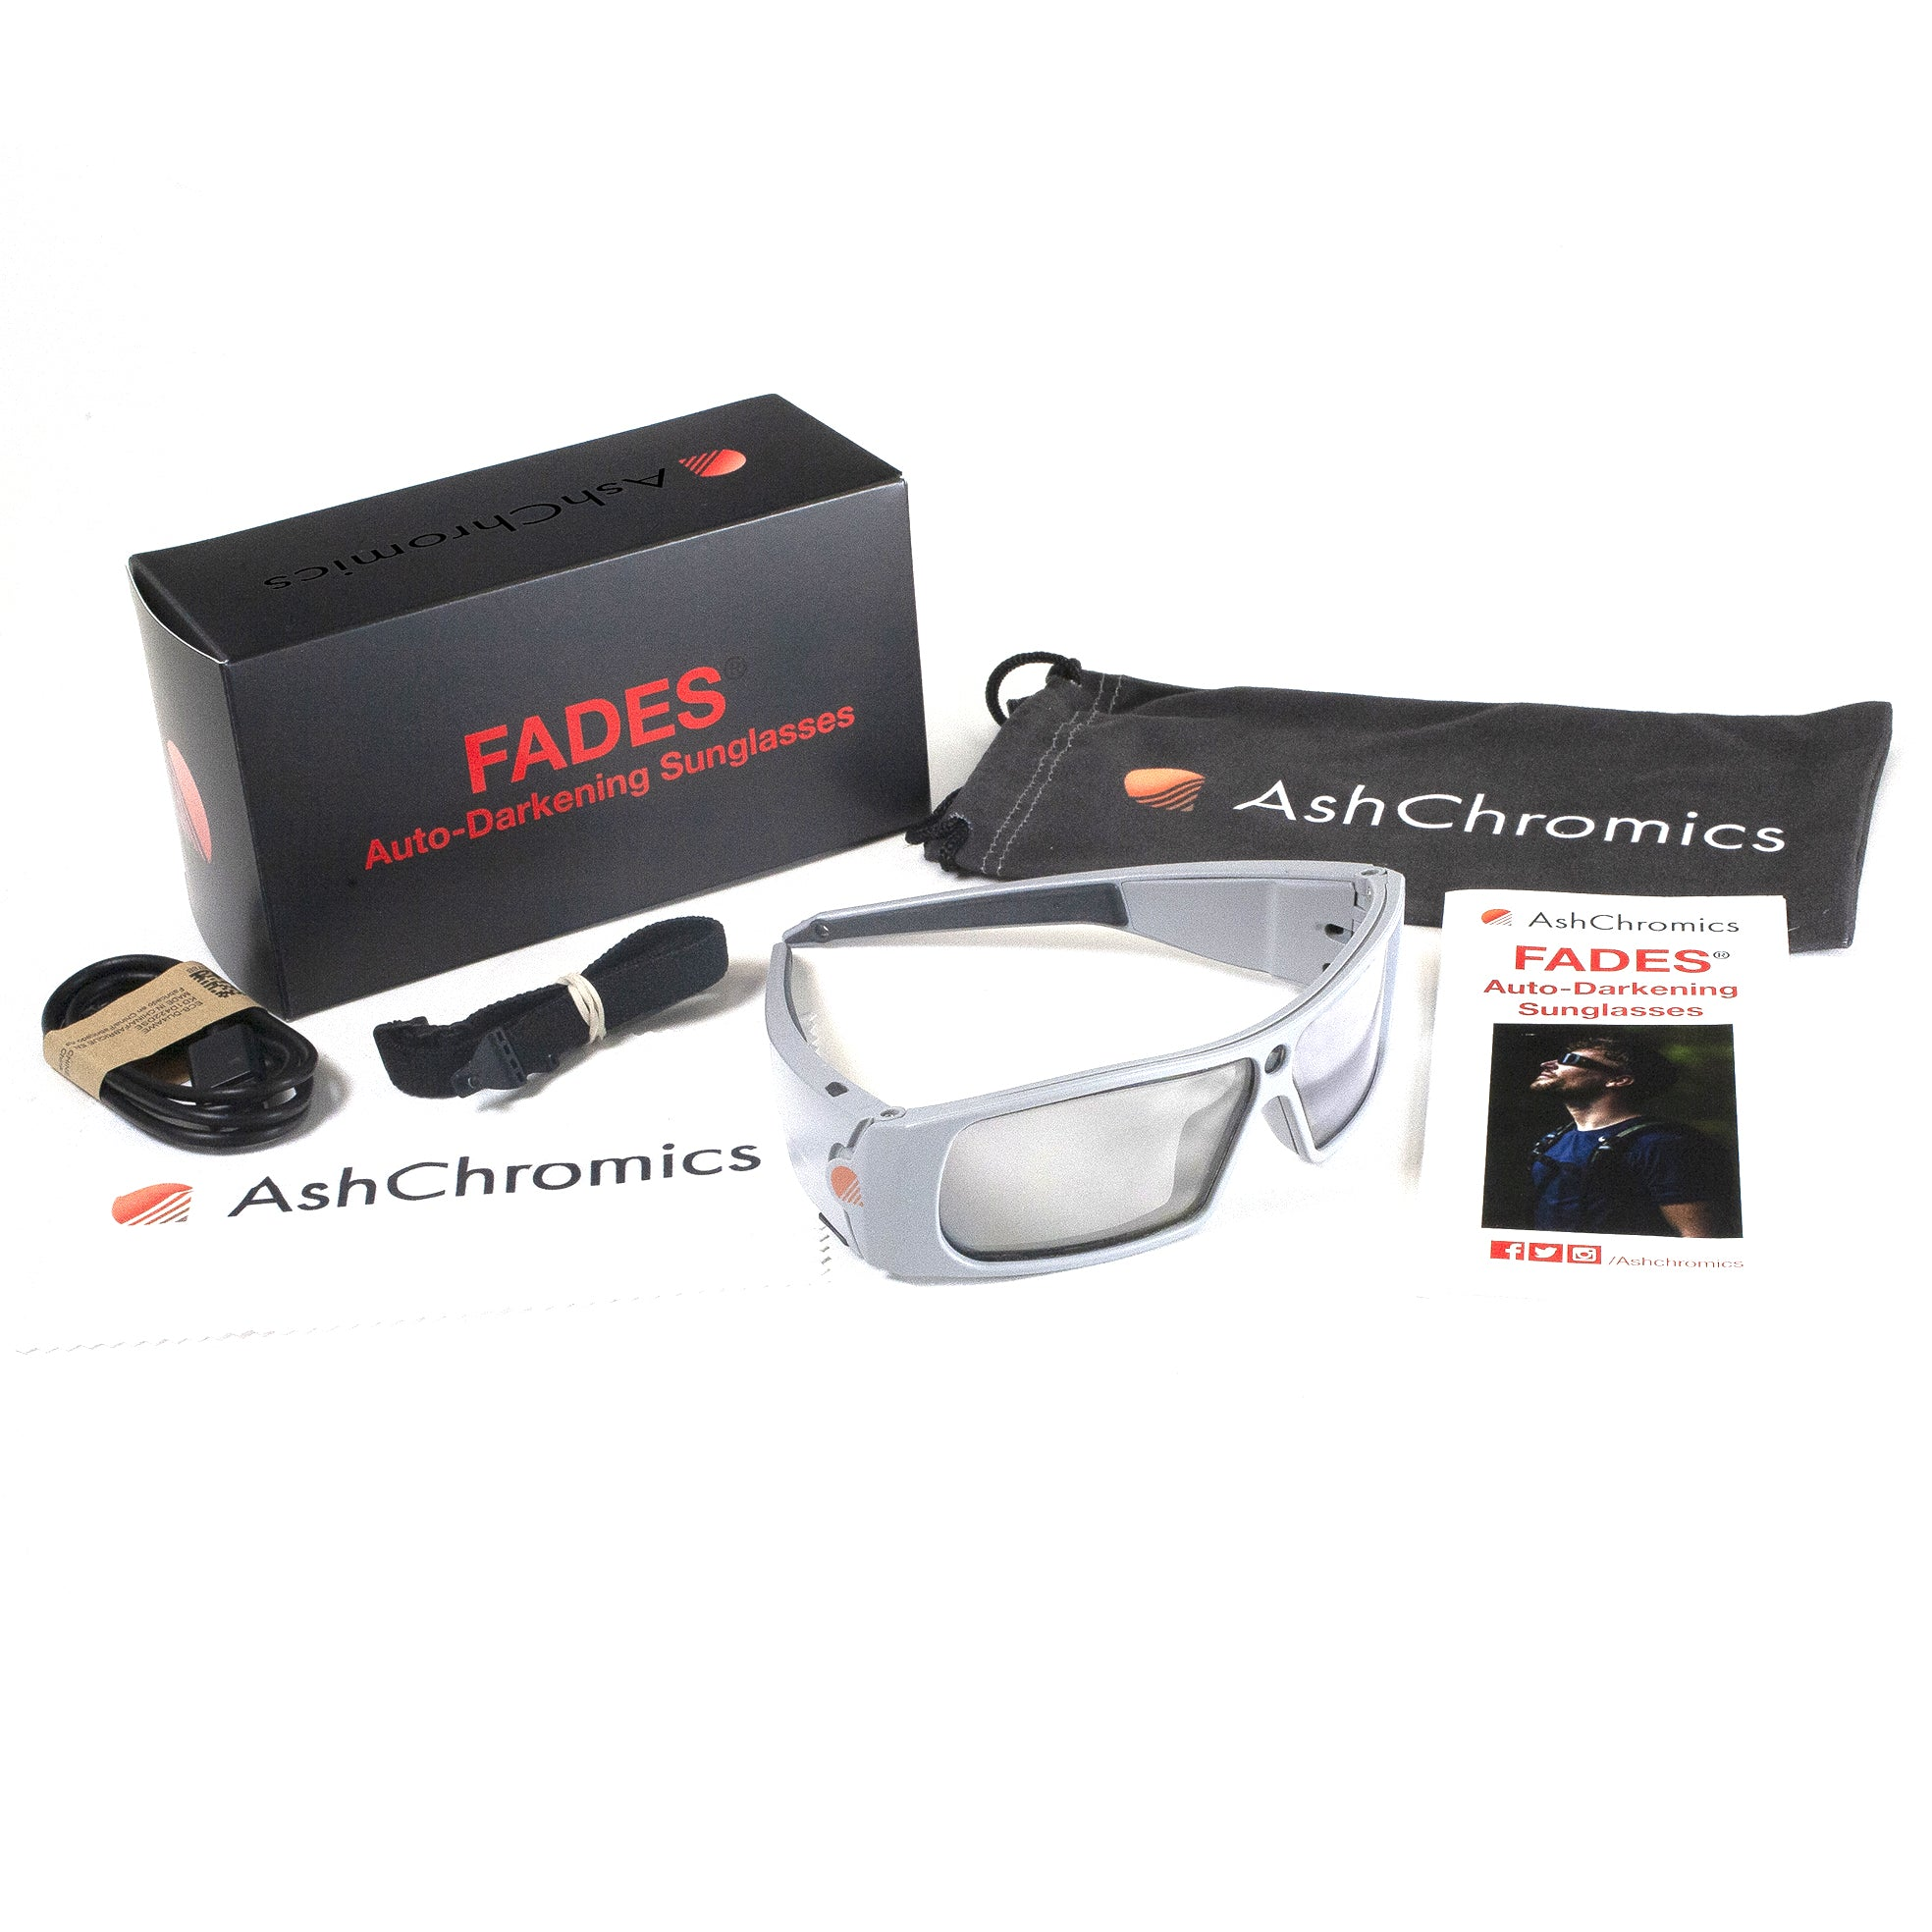 AshChromics Auto Darkening Cycling Sunglasses Package